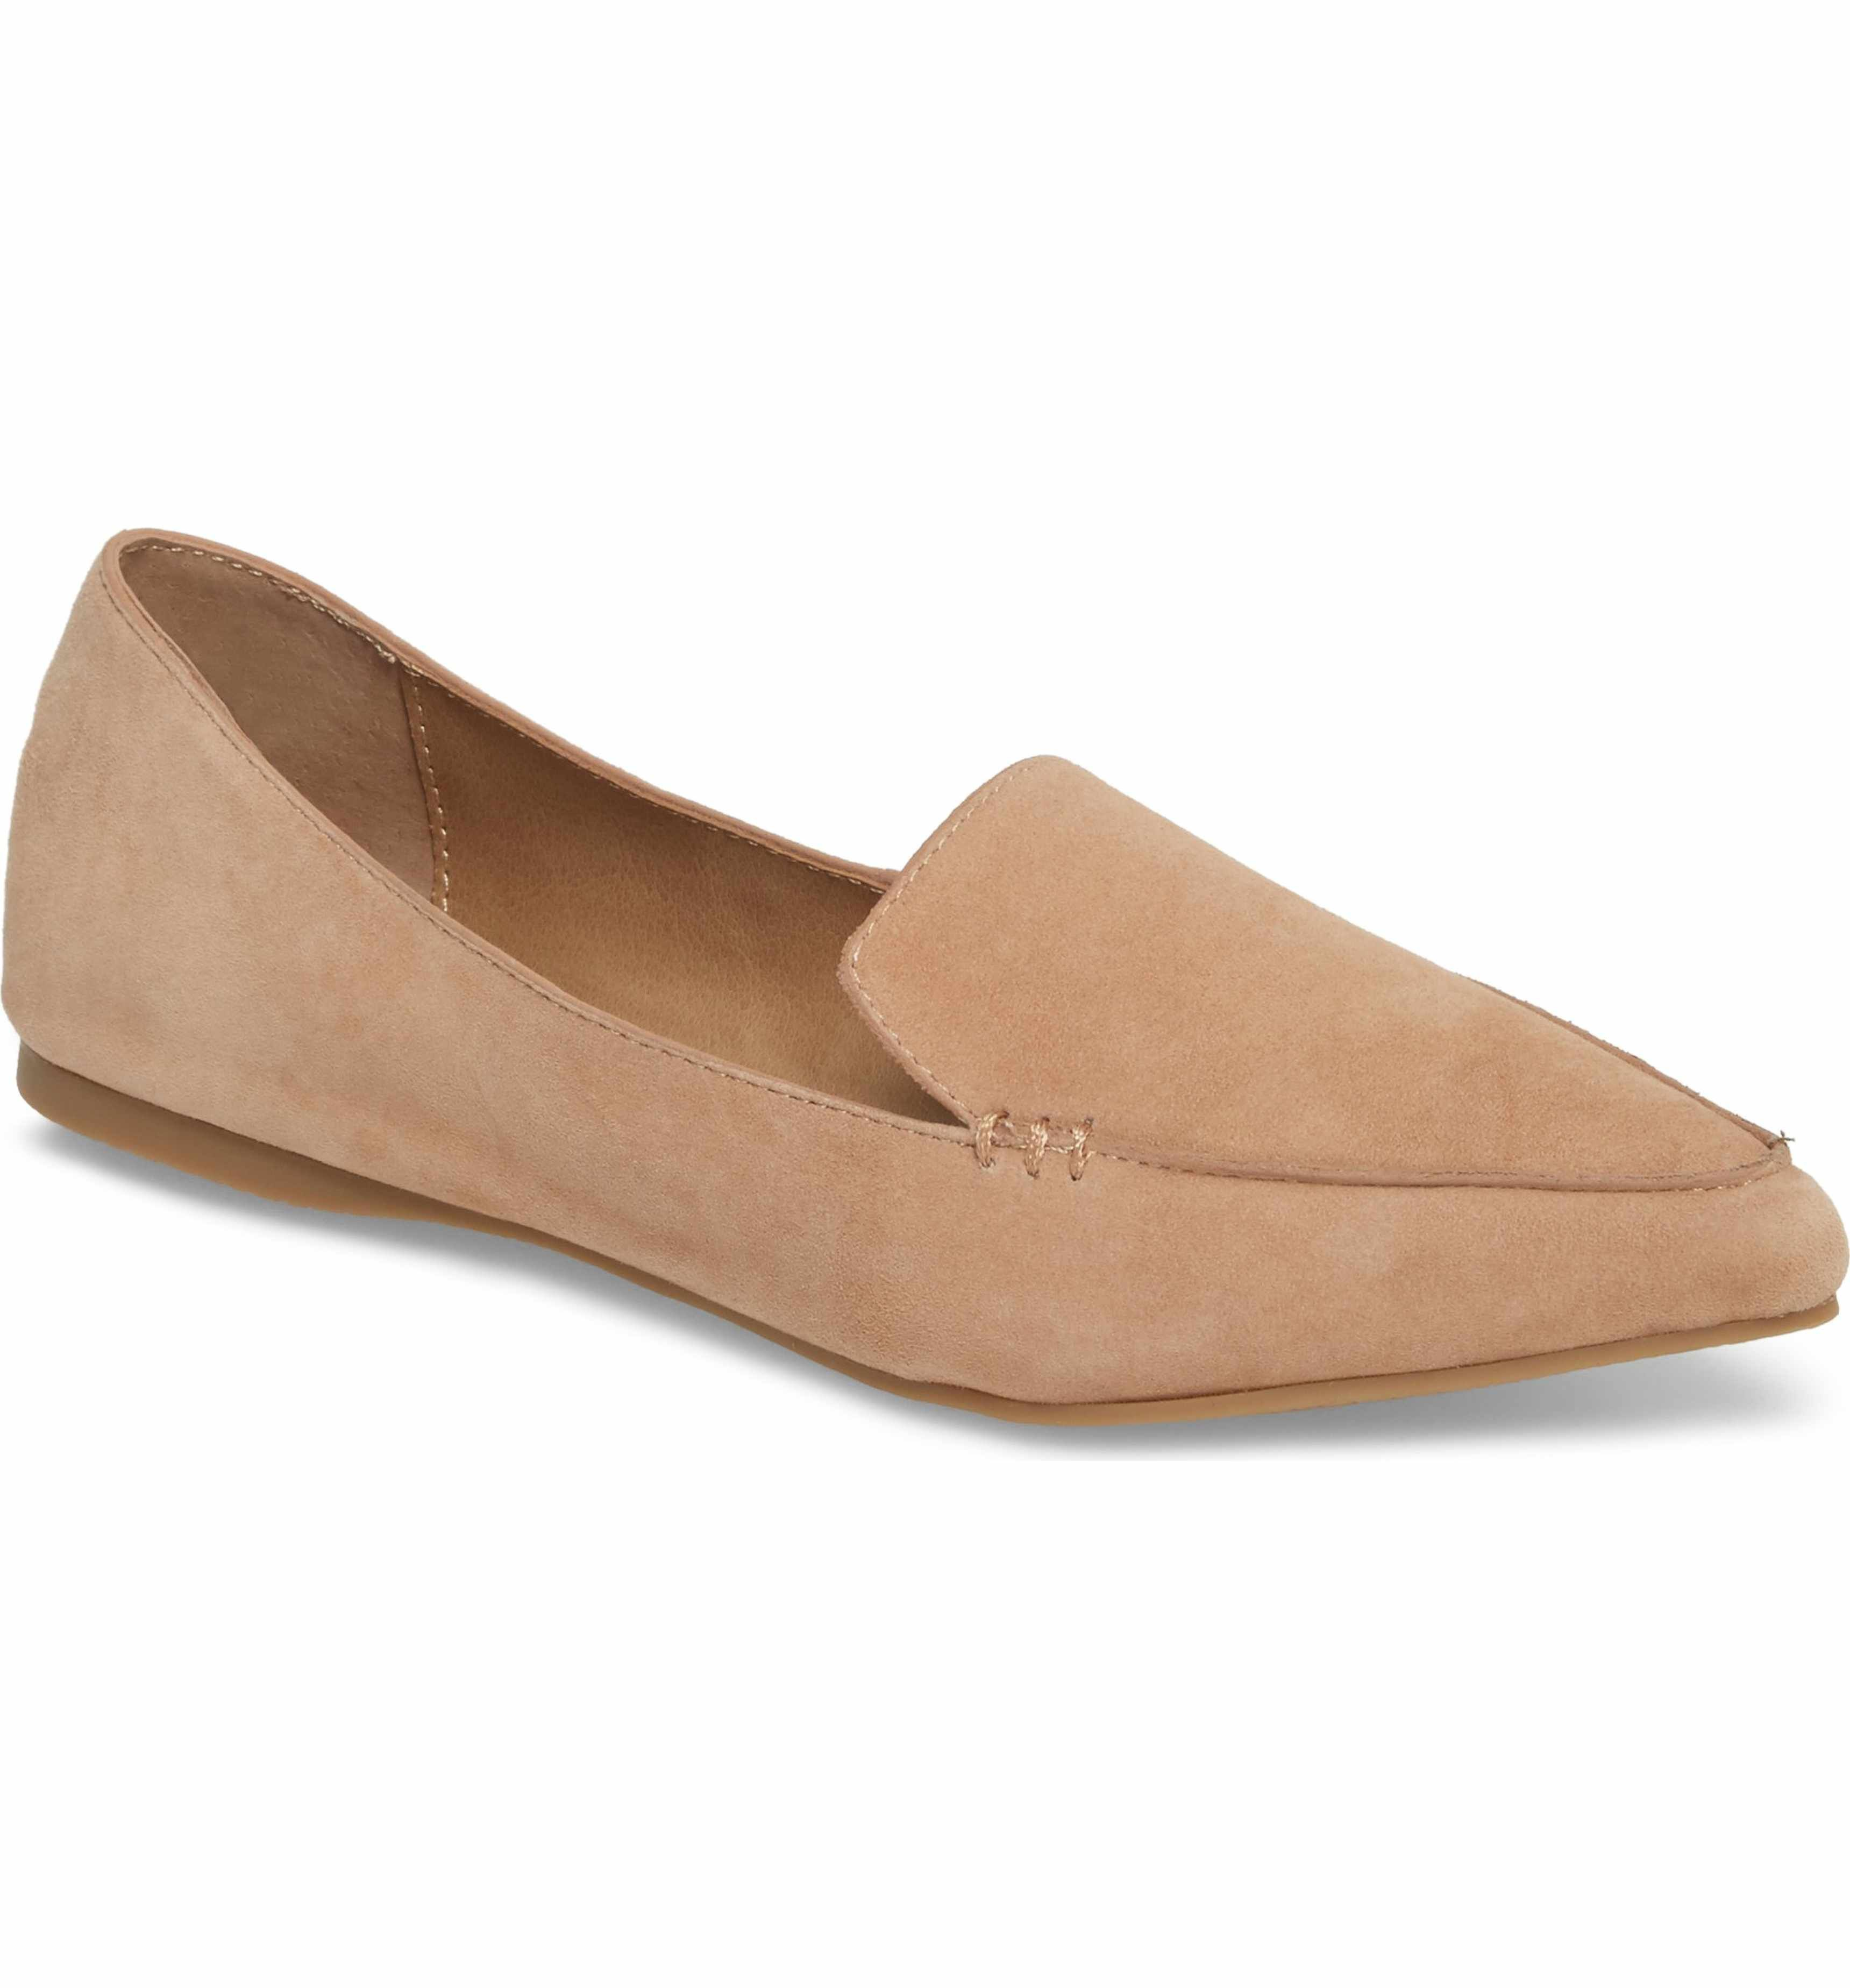 5ab68286fe0 Main Image - Steve Madden Feather Loafer Flat (Women)